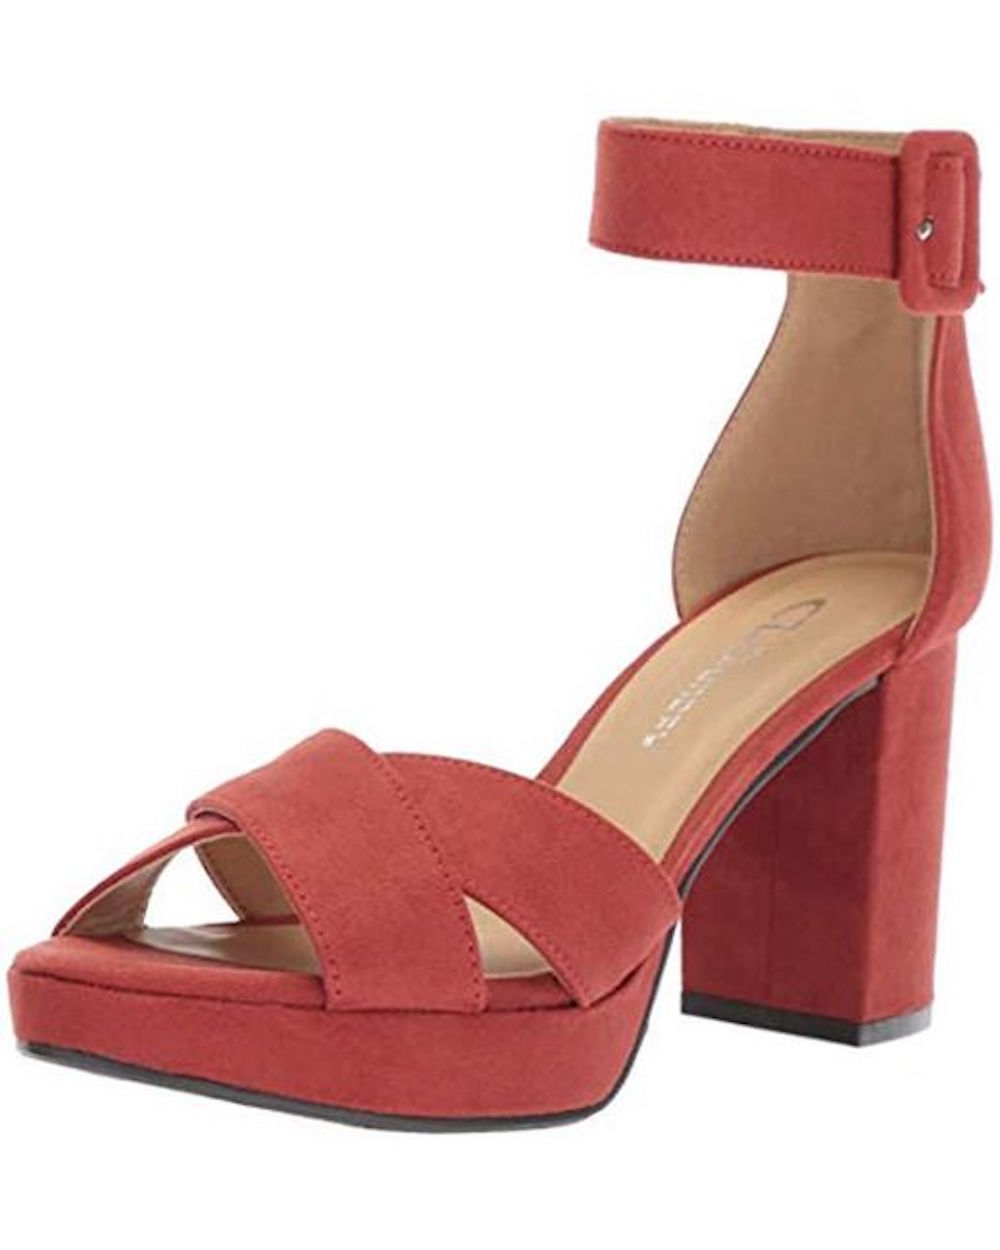 7342302610e CL by Chinese Laundry Womens Gala Open Toe Casual Ankle Strap Sandals